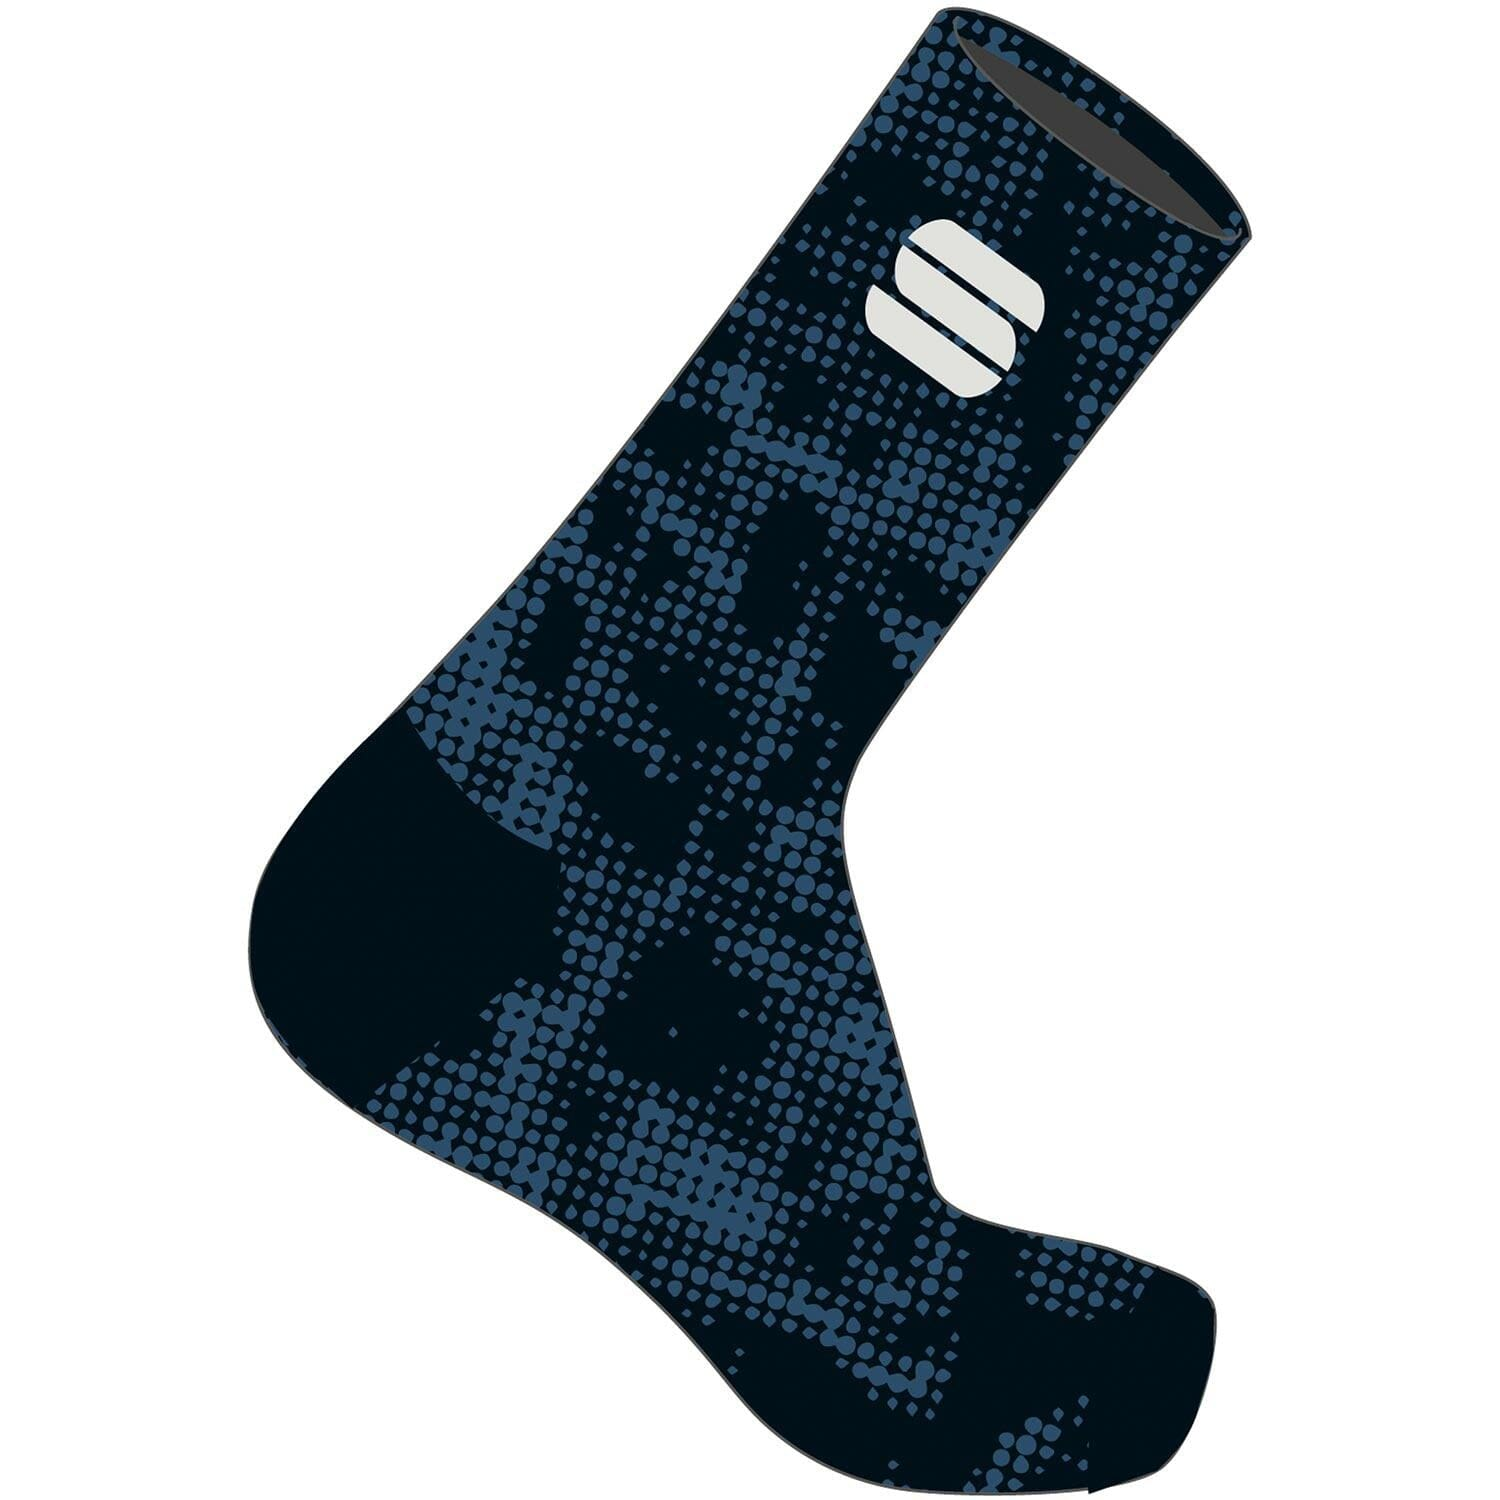 Sportful-Sportful Escape Socks-Black-S-SF2104300212-saddleback-elite-performance-cycling